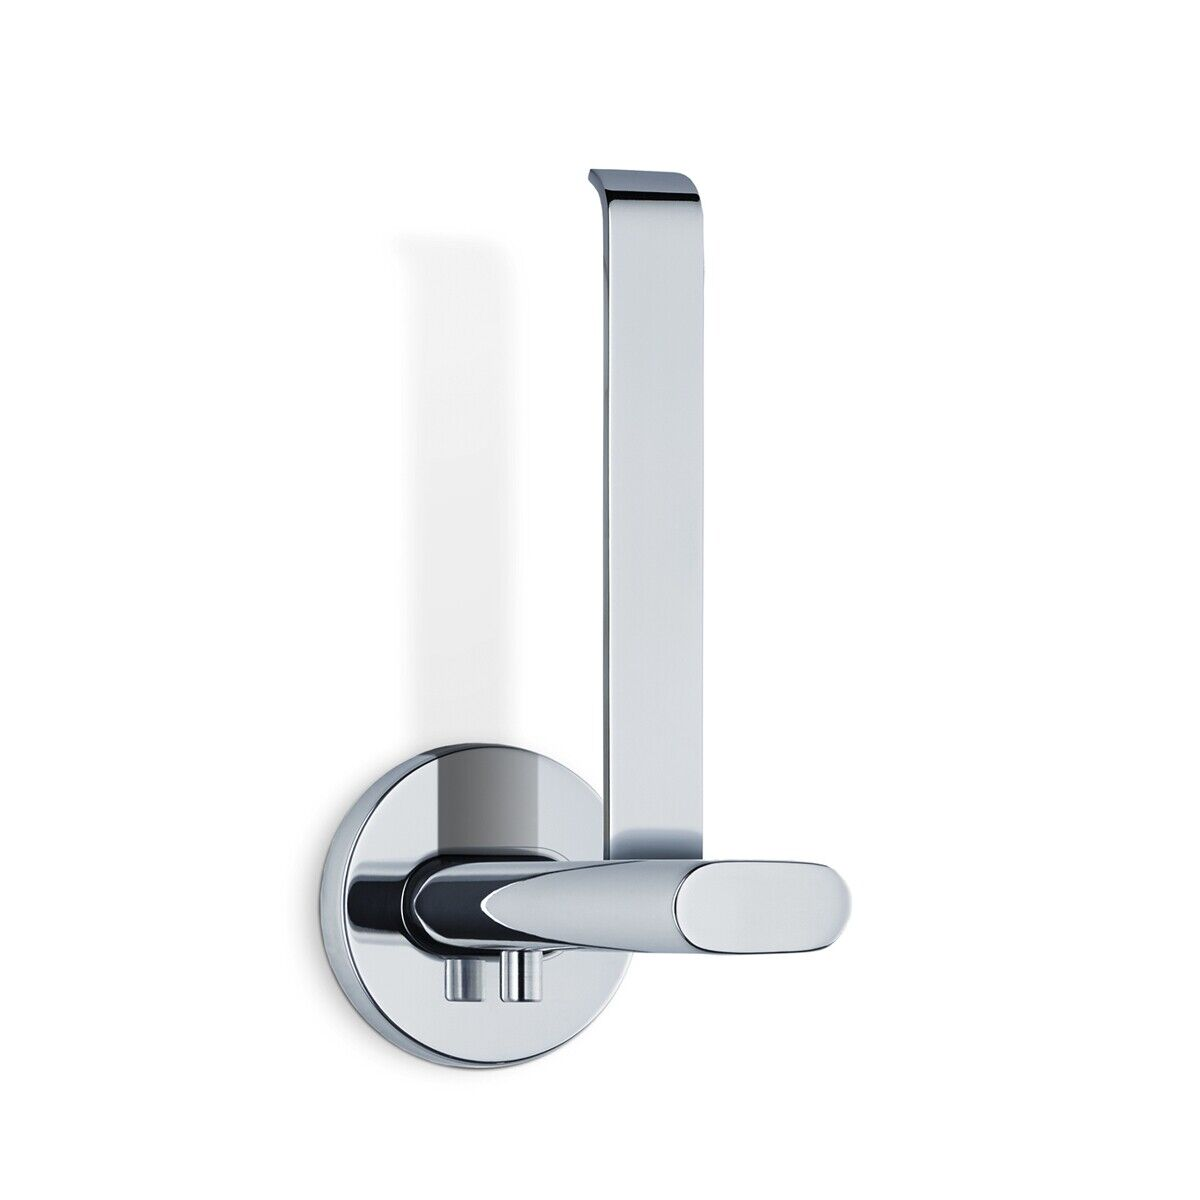 Blomus Areo Polished Spare Toilet Roll Roll Roll Holder H15cm x W5.5cm x D10cm 41d6c4